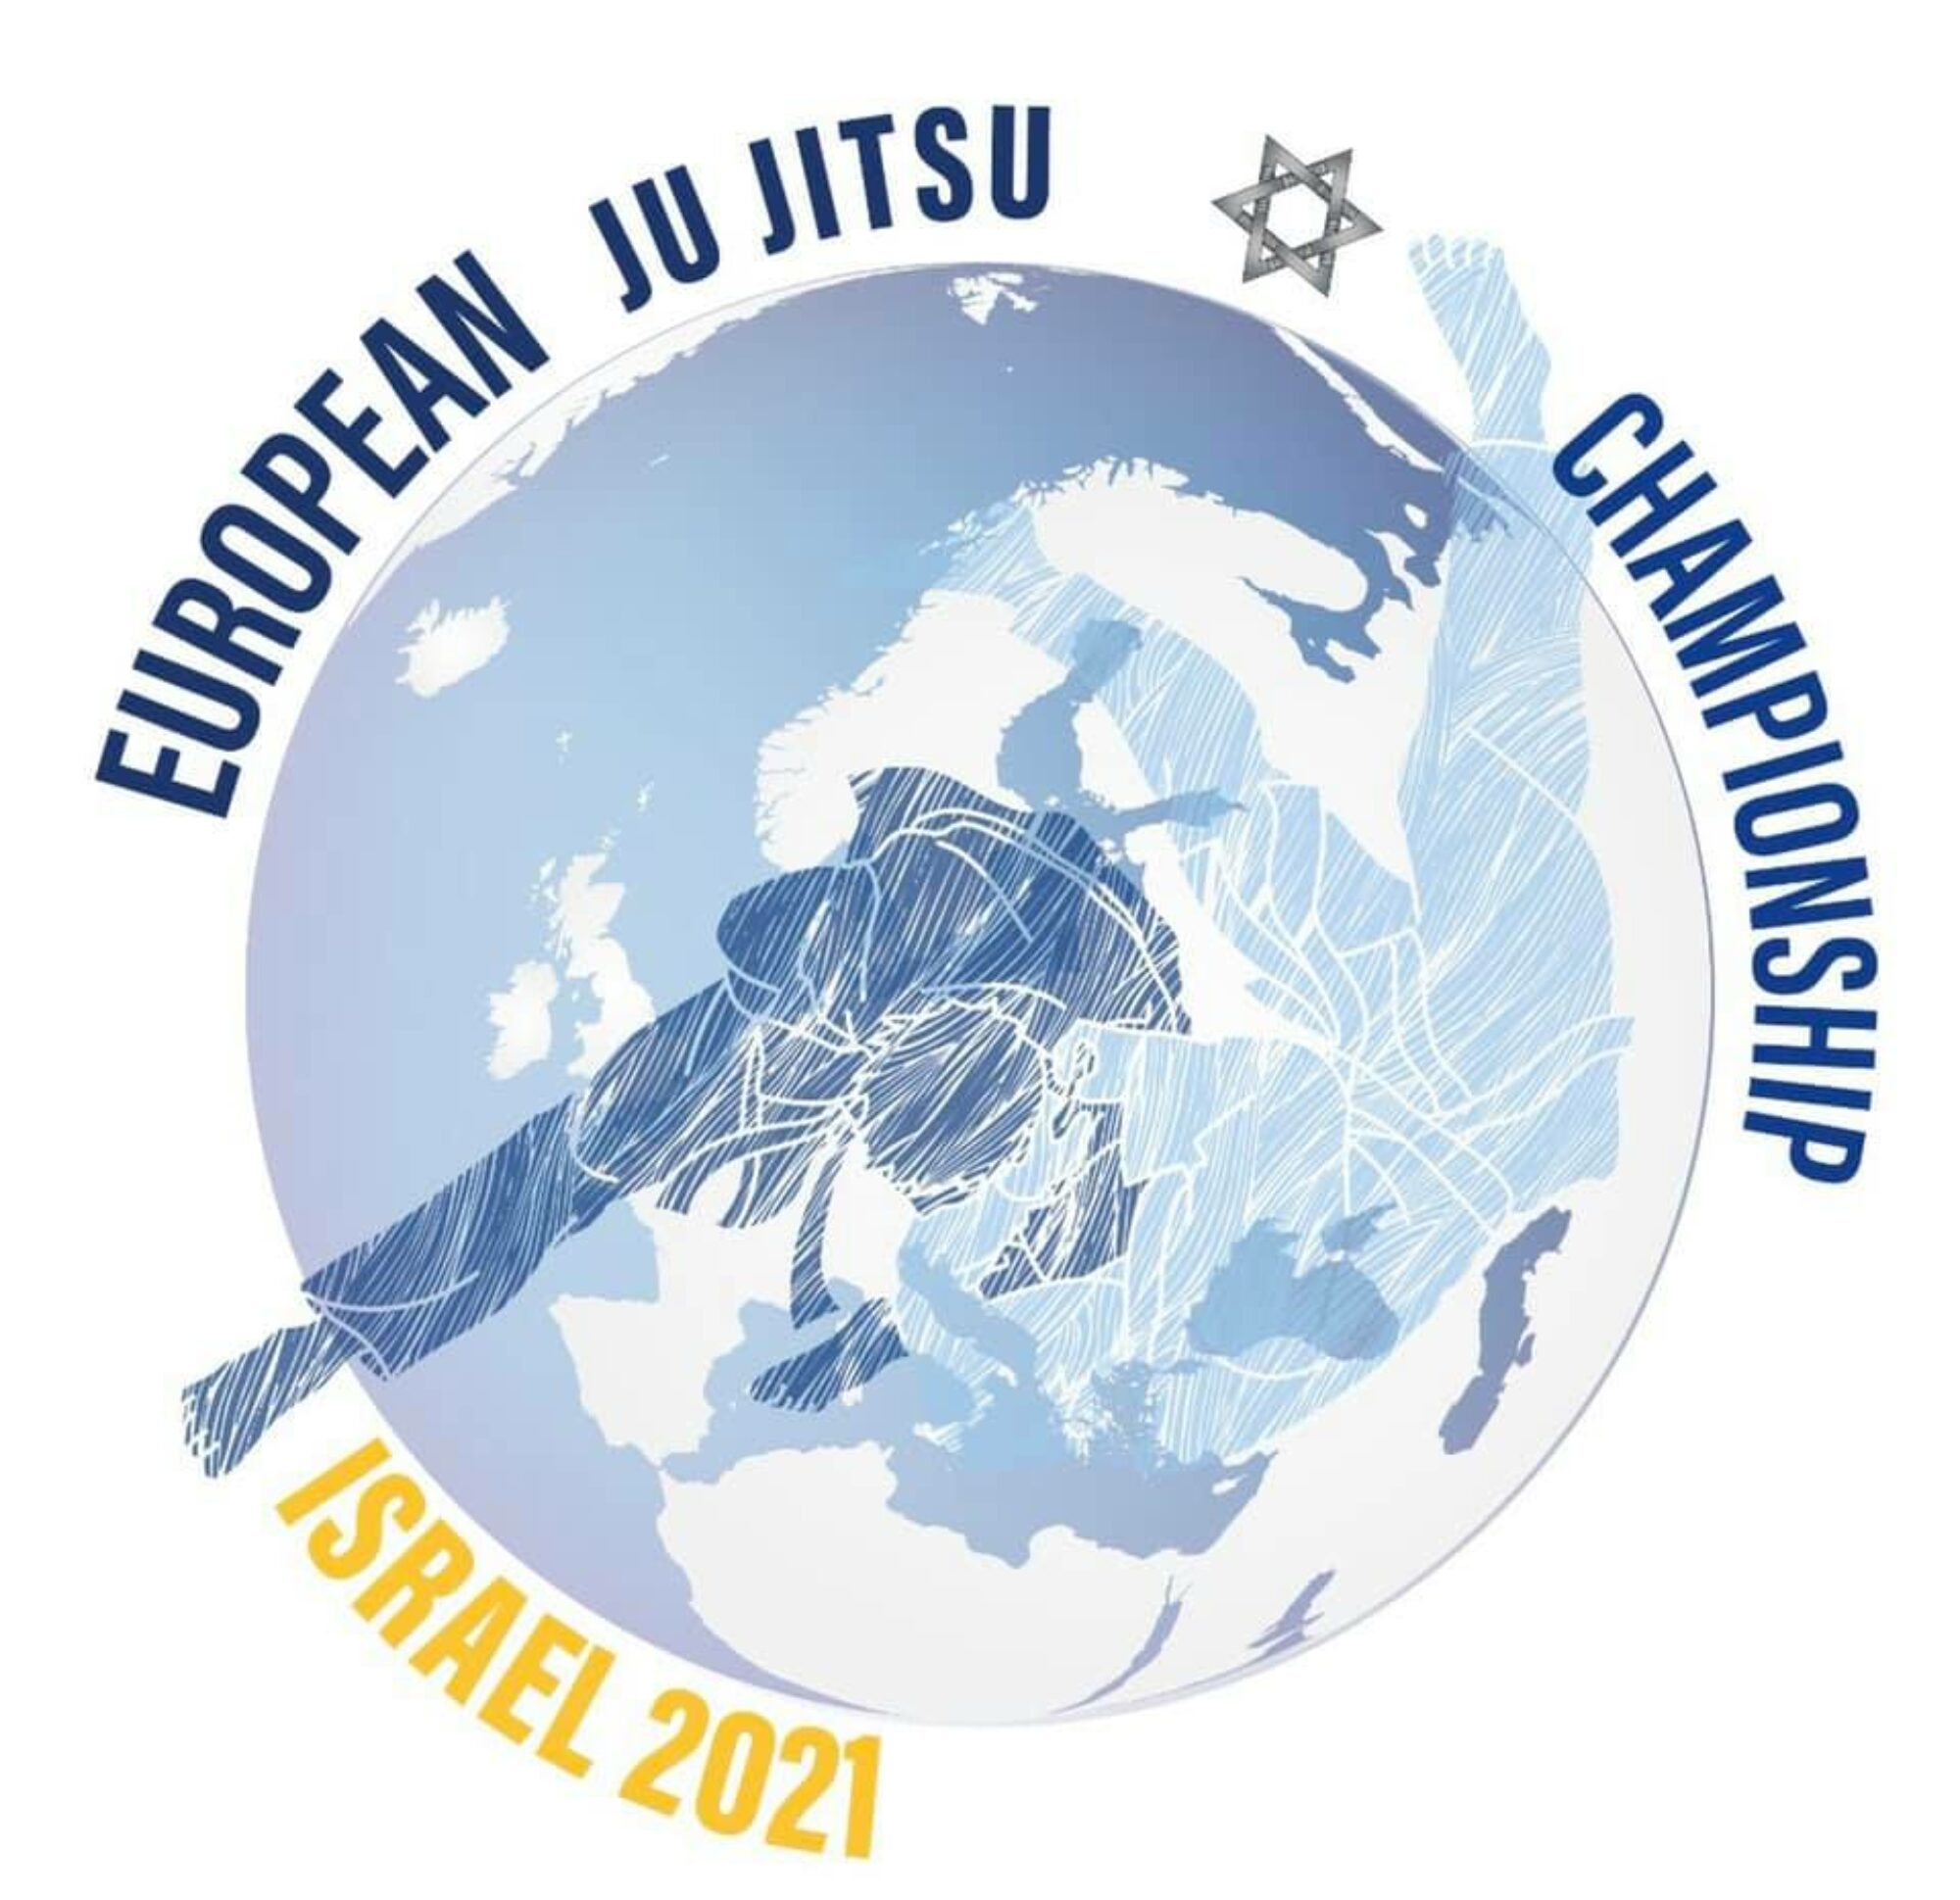 Ju-Jitsu European Union